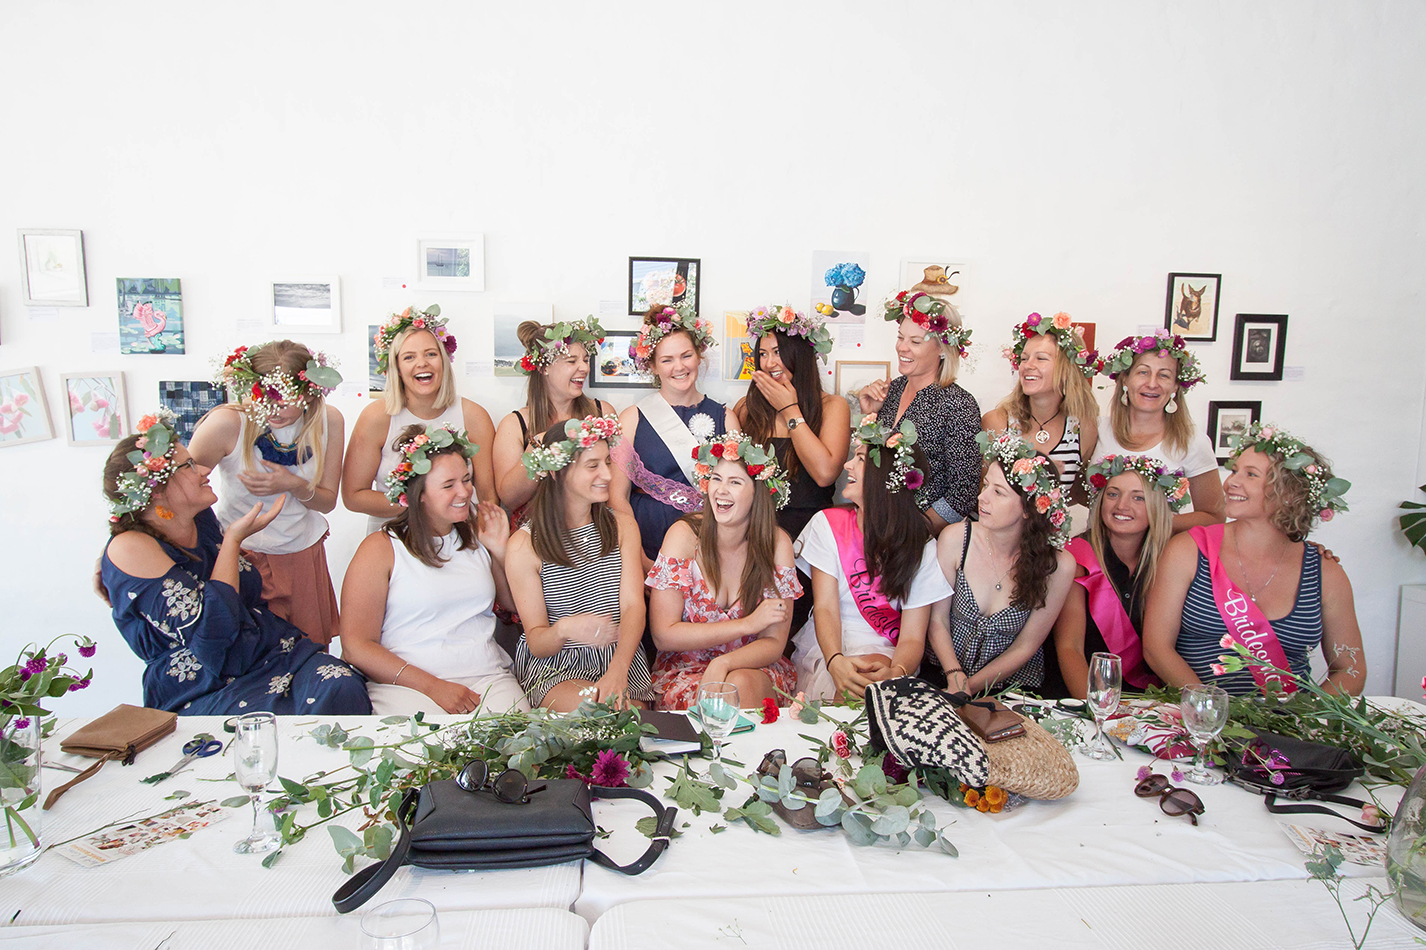 Hens' Parties - For a unique and intimate Hens' Party you'll always remember